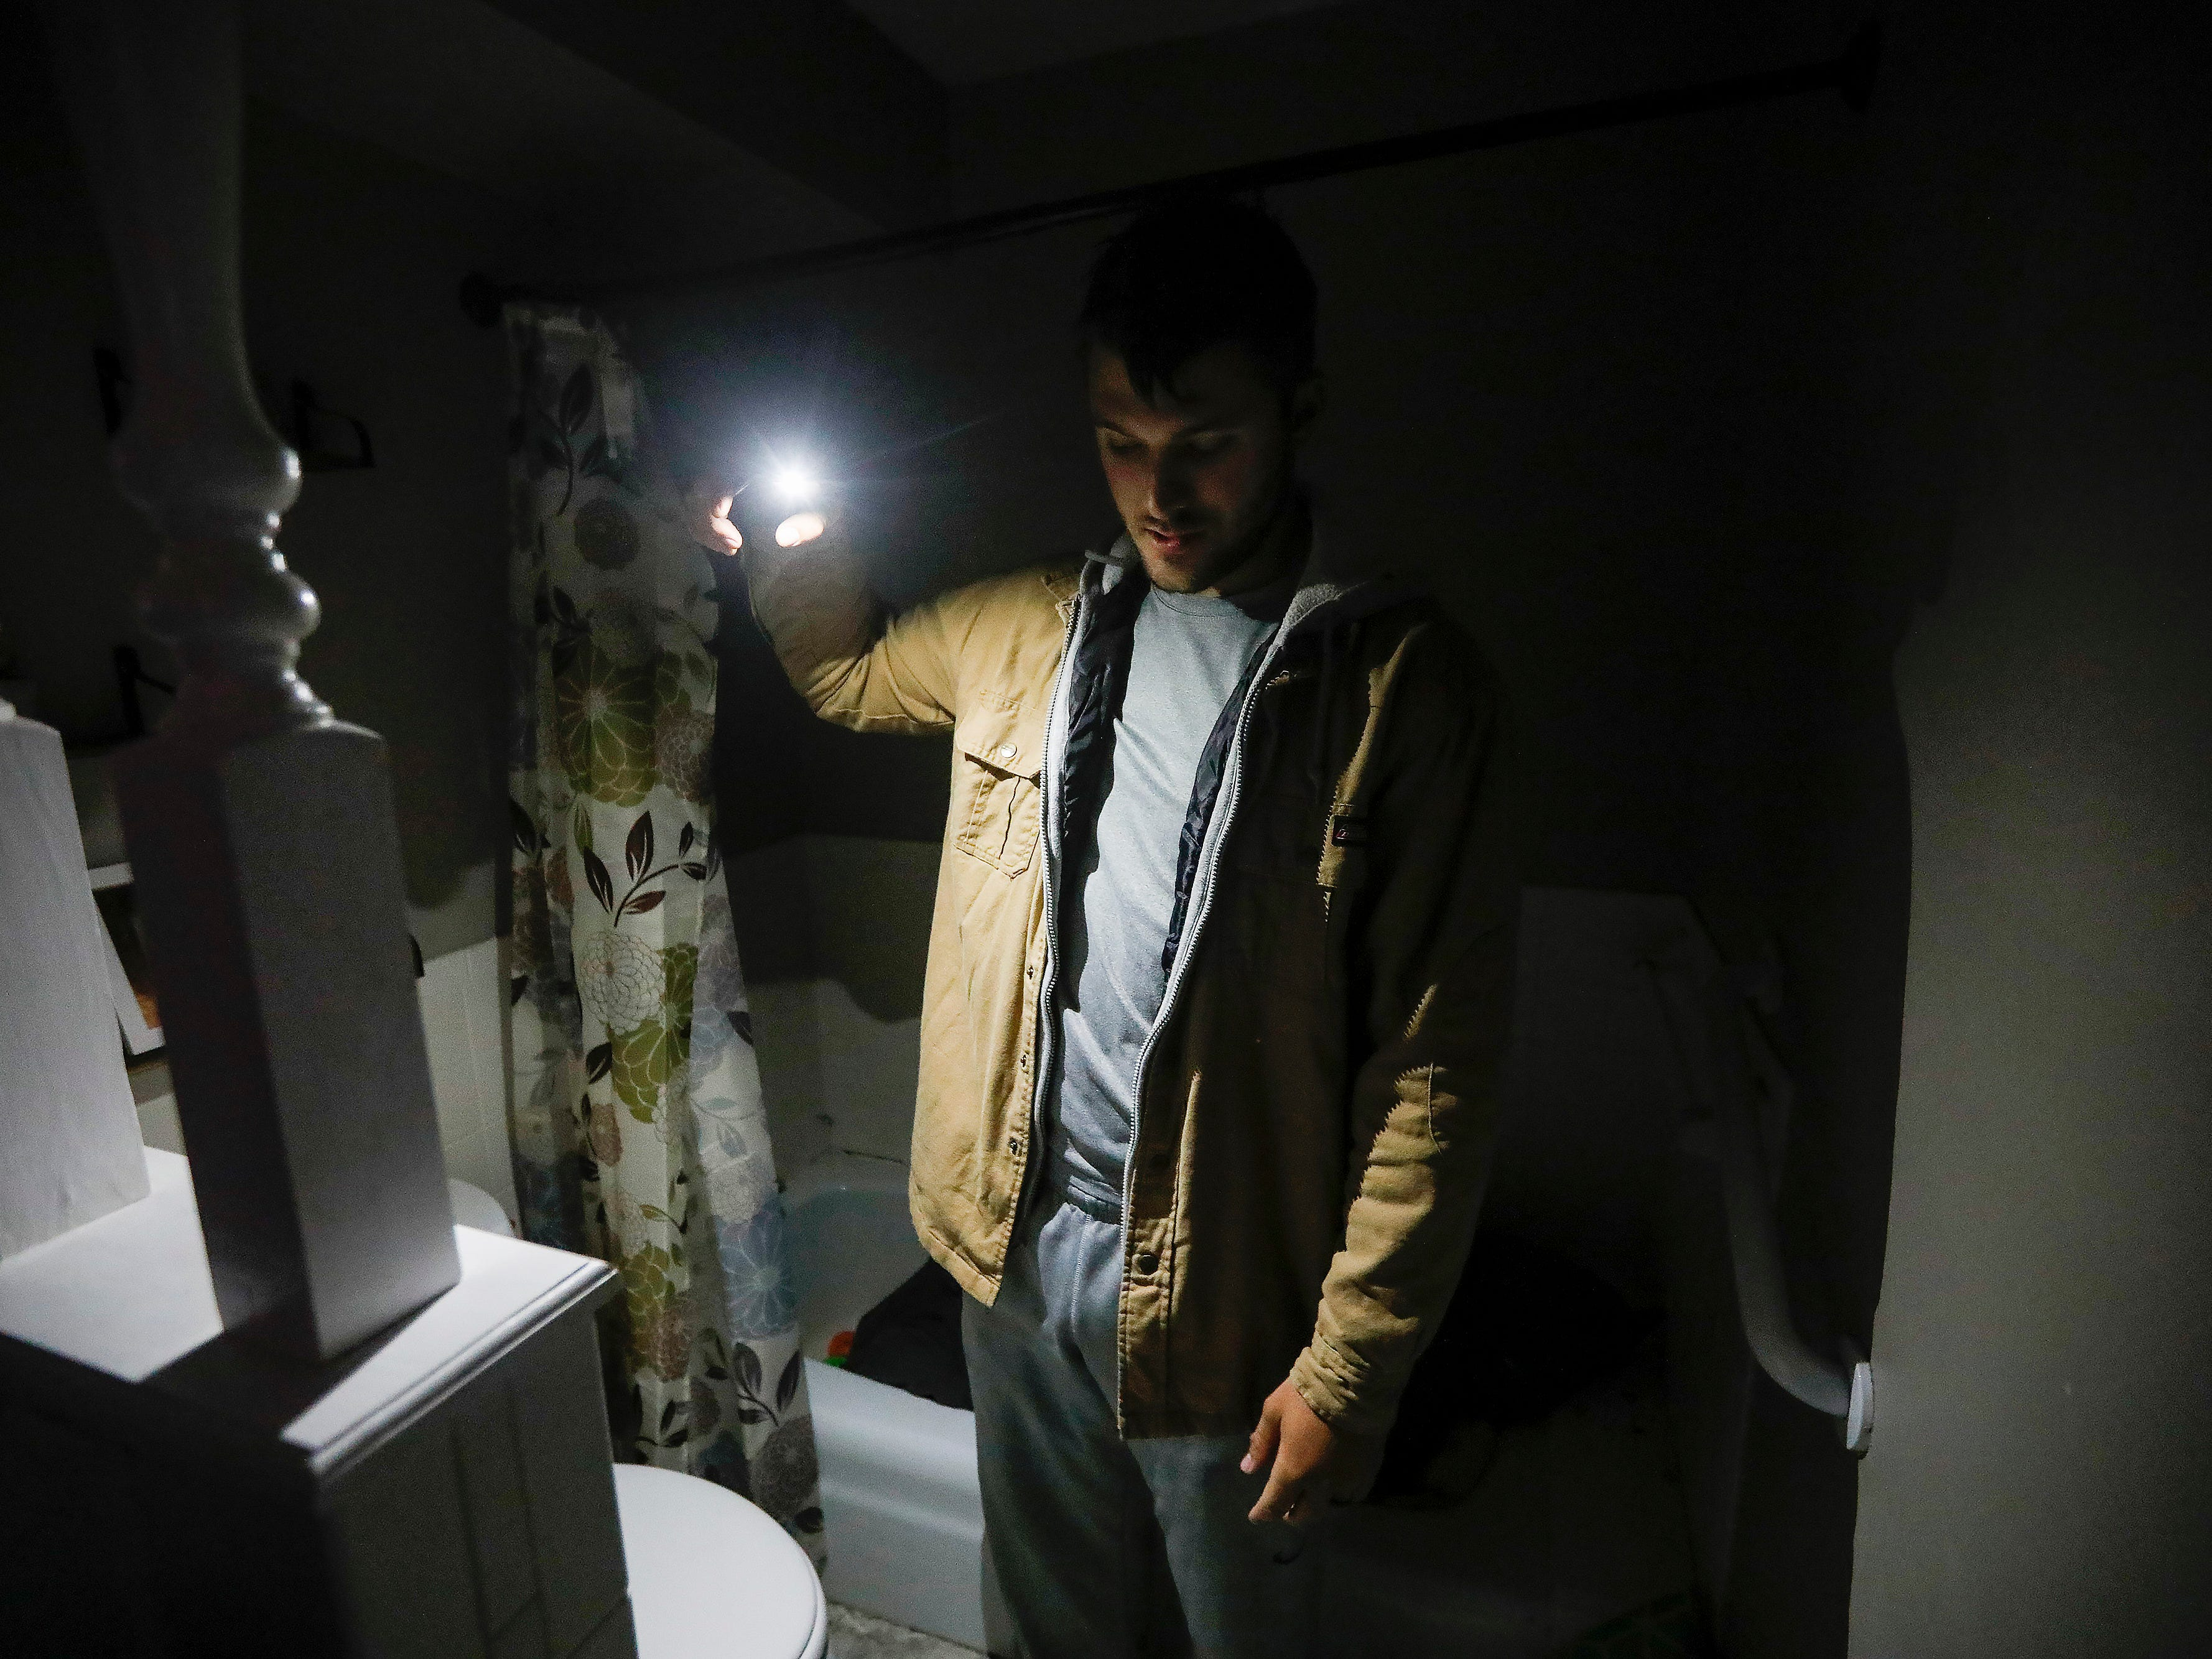 Denton Wilson uses a flashlight to illuminate the bathroom where he and his family took shelter during a likely tornado that hit Ozark on Tuesday, April 30, 2019.